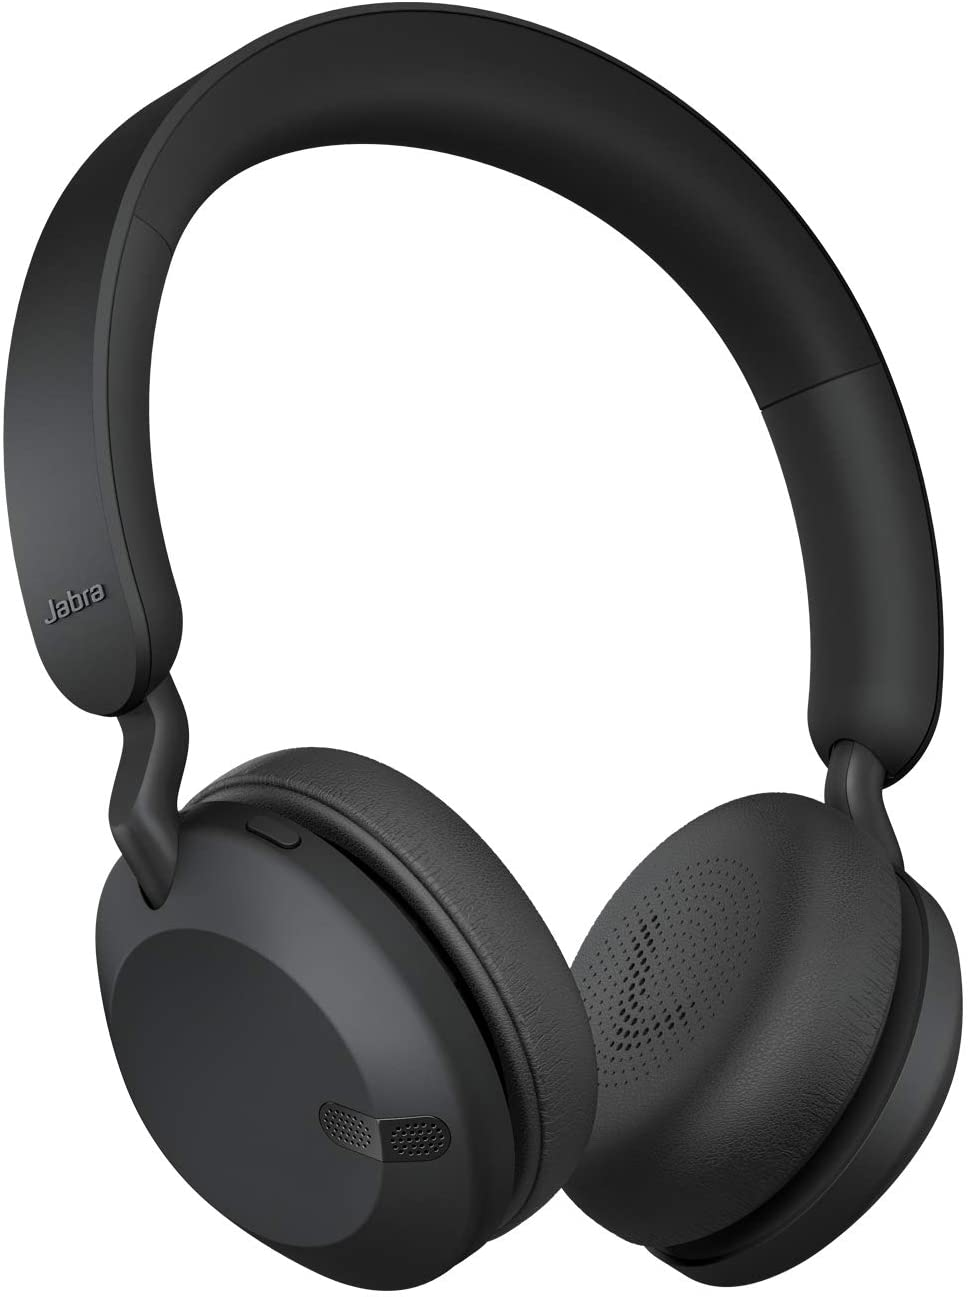 Jabra Elite 45h Wireless On-Ear Headphones - Compact, Foldable Earphones with 50-Hours Battery Life - 2-Microphone Call Technology - Black